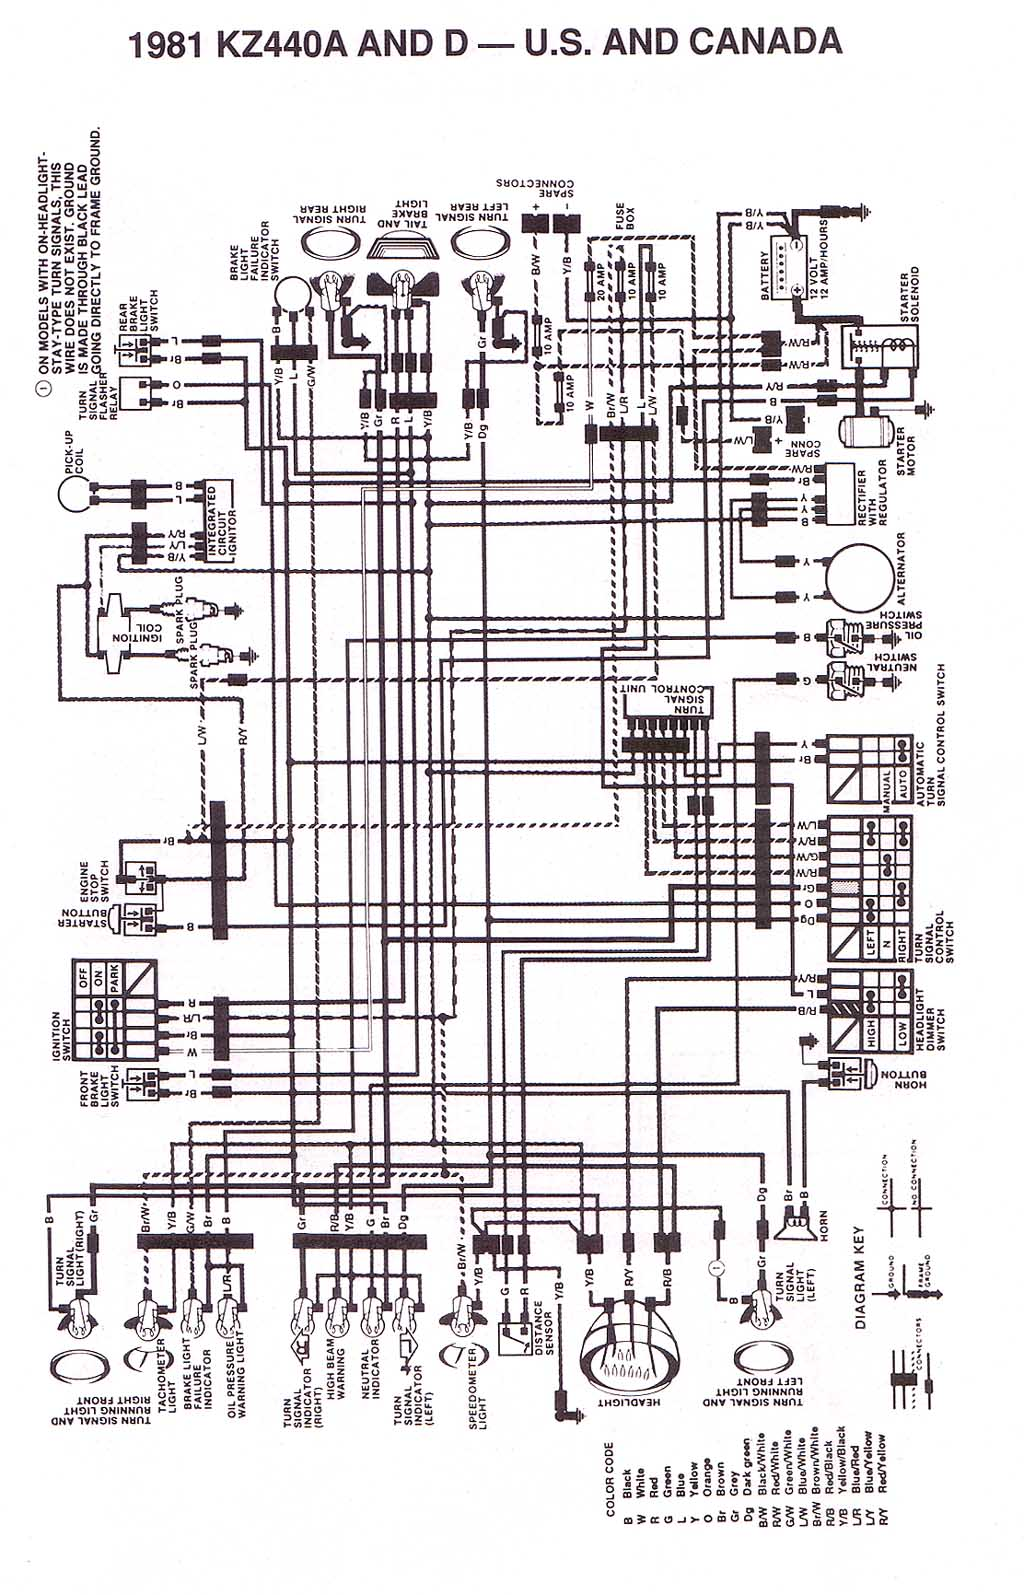 1982 Kawasaki 440 Ltd Wiring Diagram Circuit Connection Ke100 For A Free Vehicle Diagrams U2022 Rh Addone Tw Wire 1979 1980